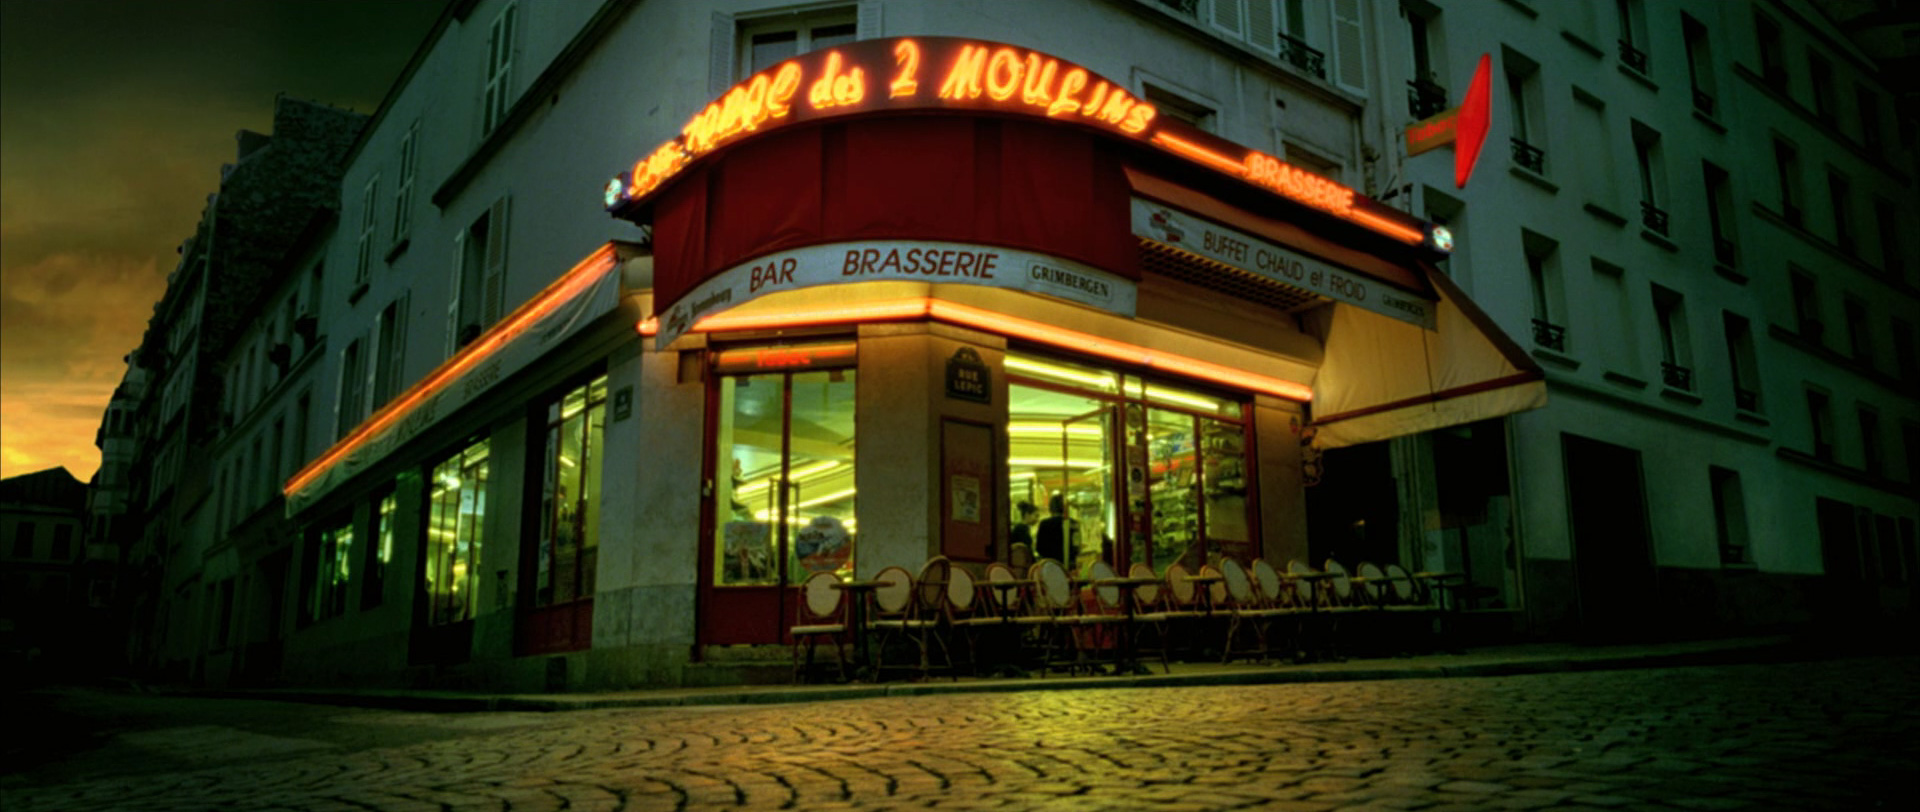 Amelie Poulain film locations Montmartre Paris France travel screenshots Cafe des deux Moulins